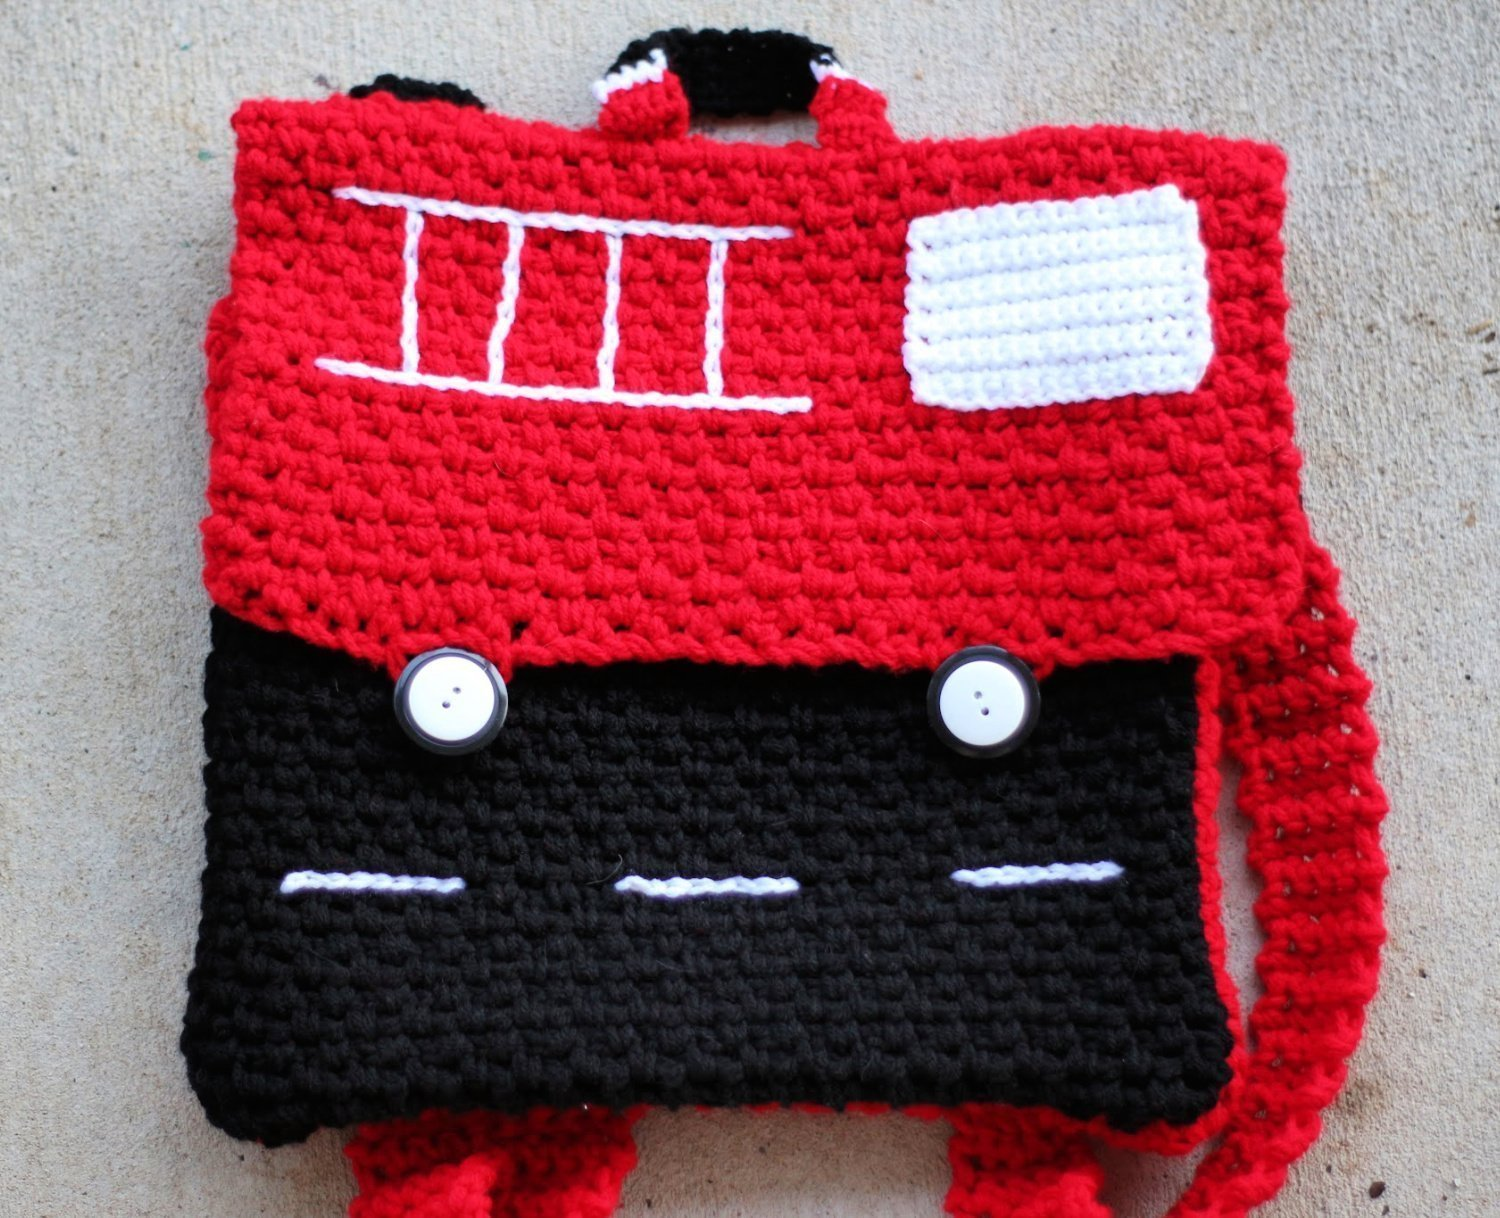 Free Crochet Pattern - learn how to crochet a fire truck backpack